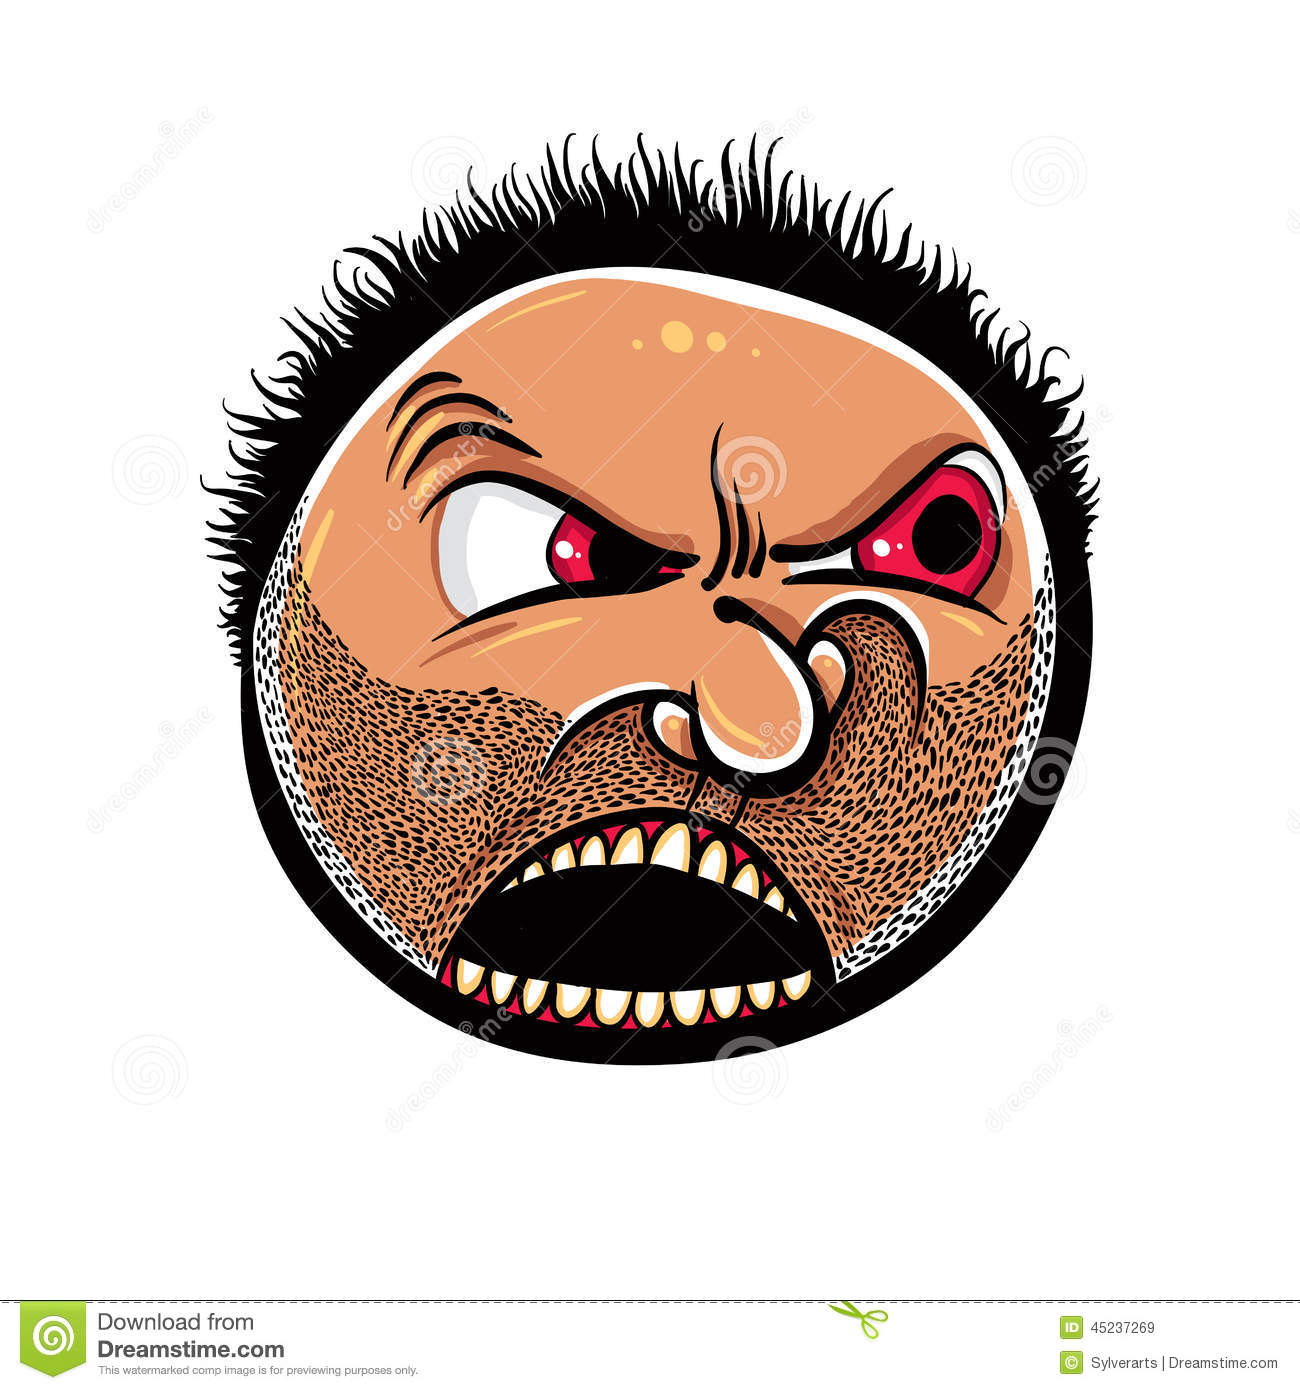 images of angry man cartoon face spacehero rh superstarfloraluk com angry cartoon faces clip art angry faces cartoon download